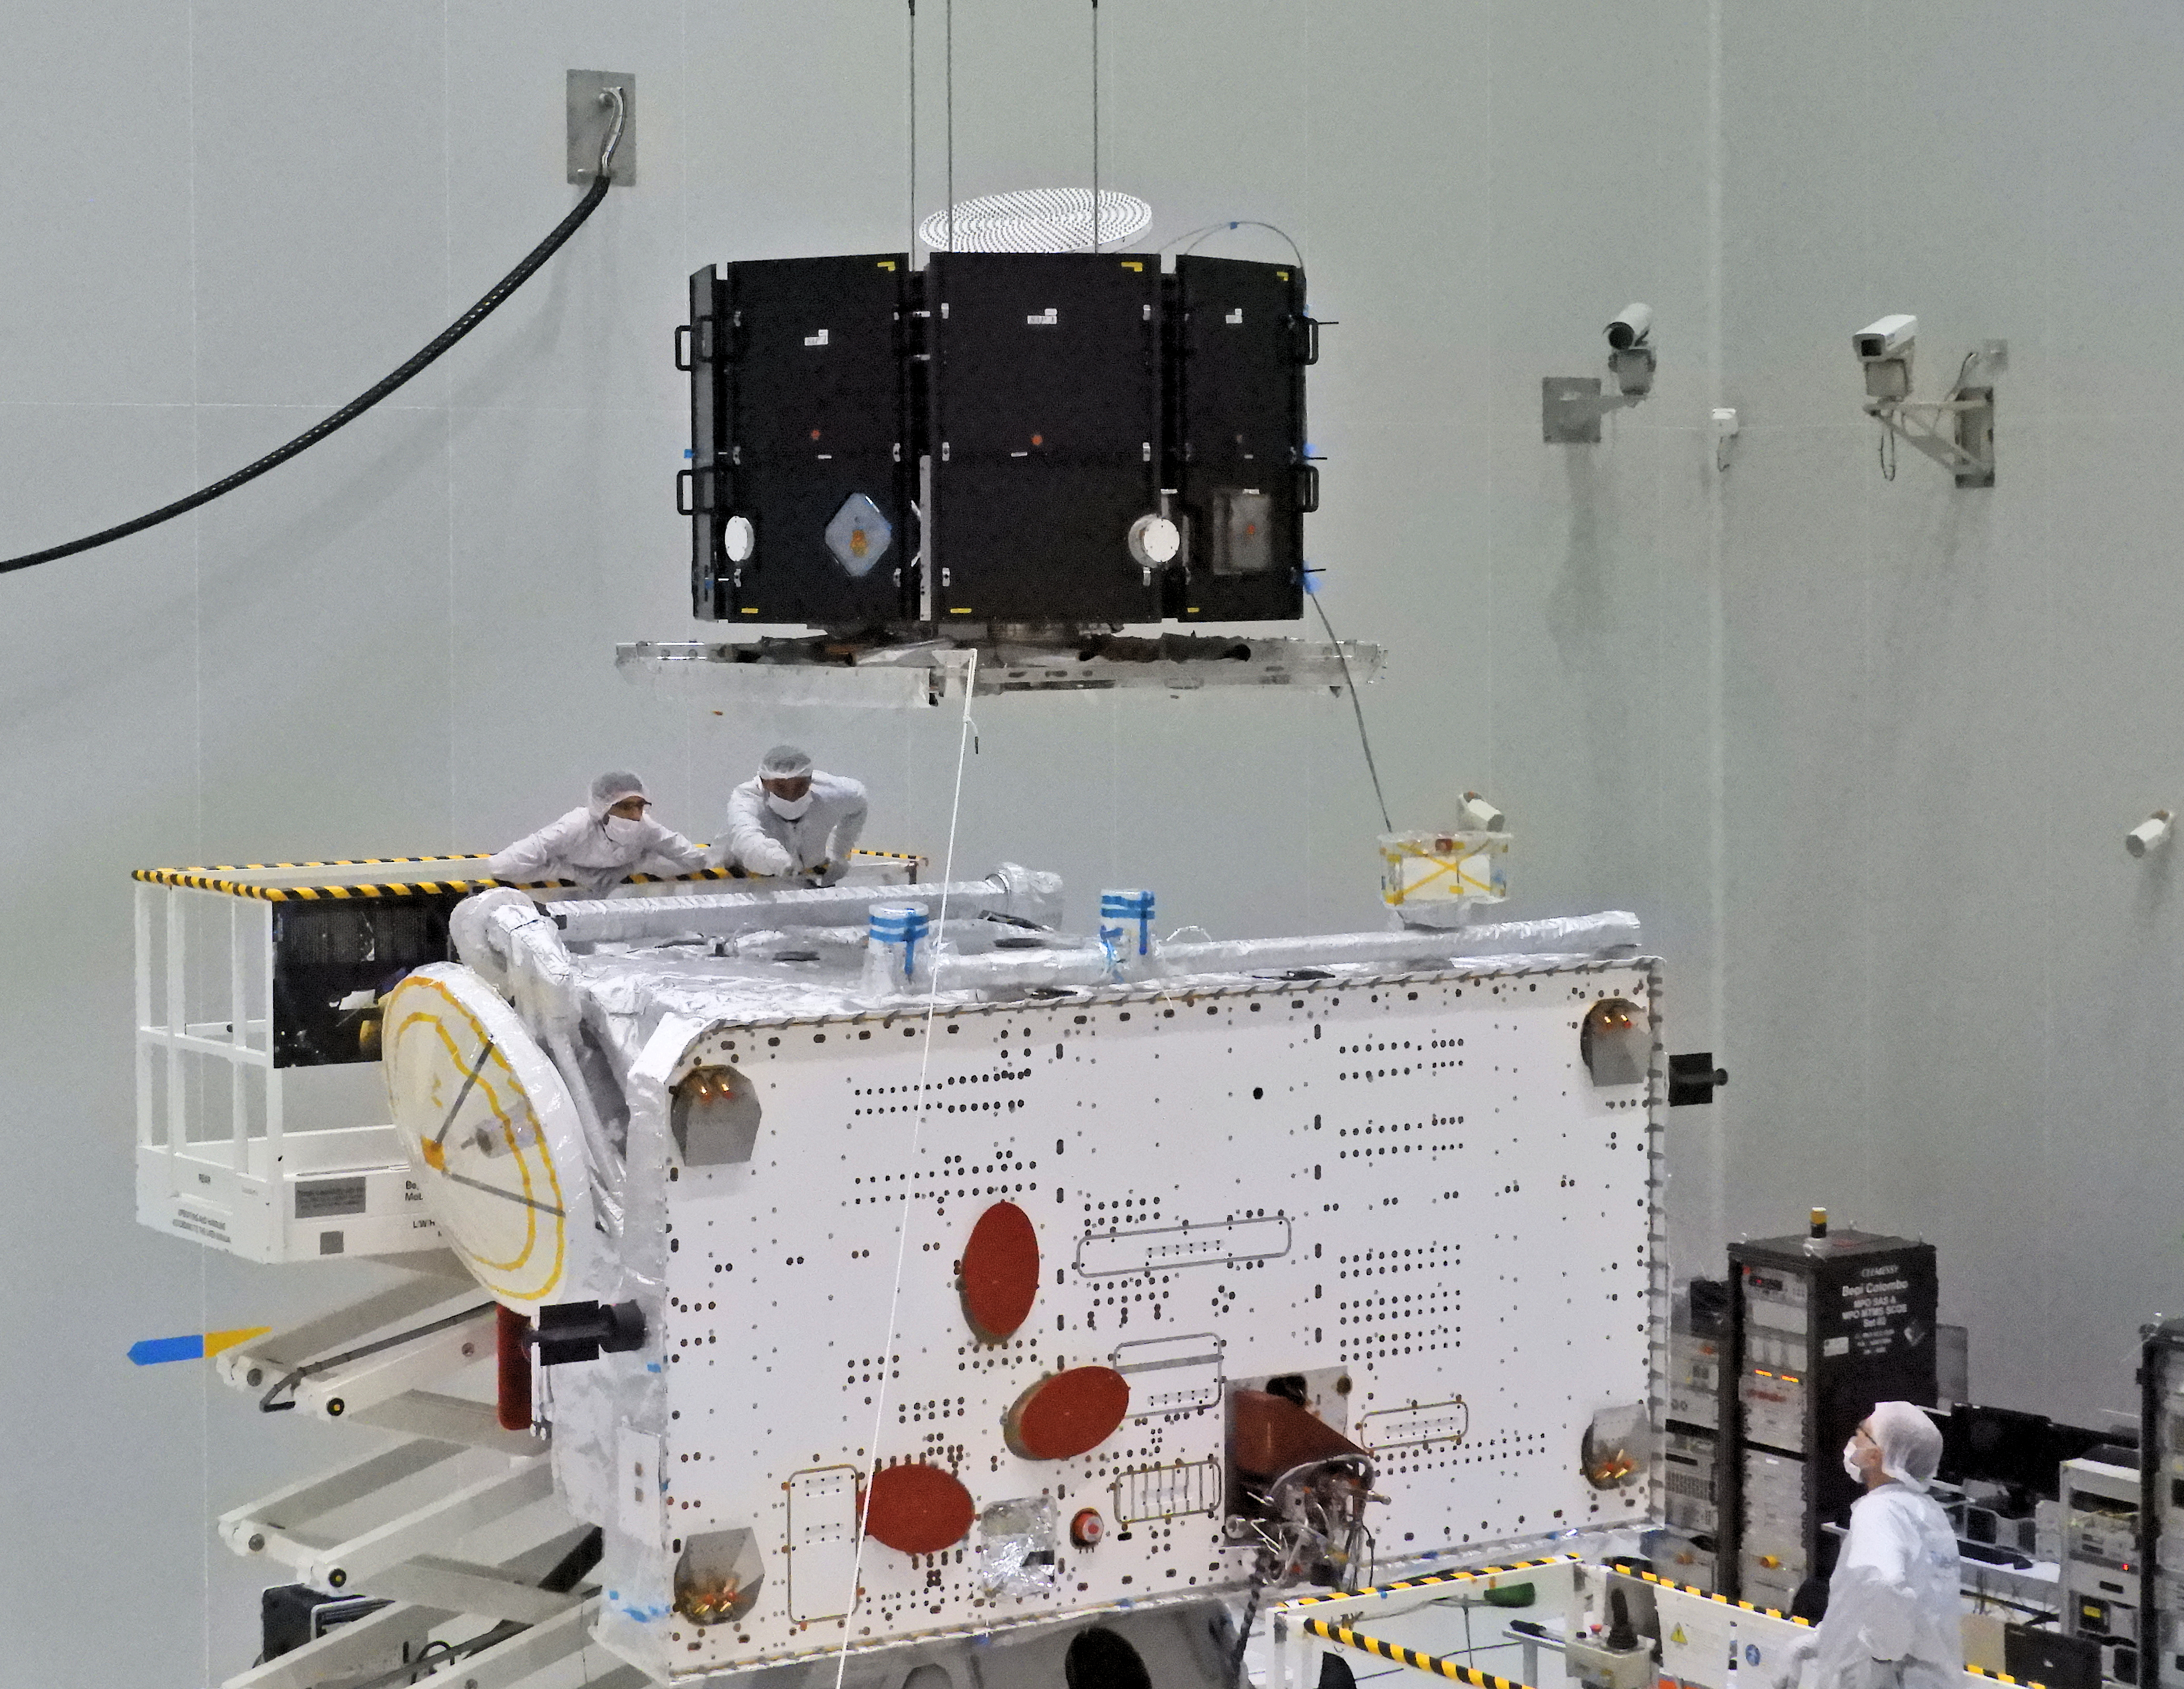 1567214050252-BepiColombo_Preparing_for_MPO_and_MMO_integration.jpg